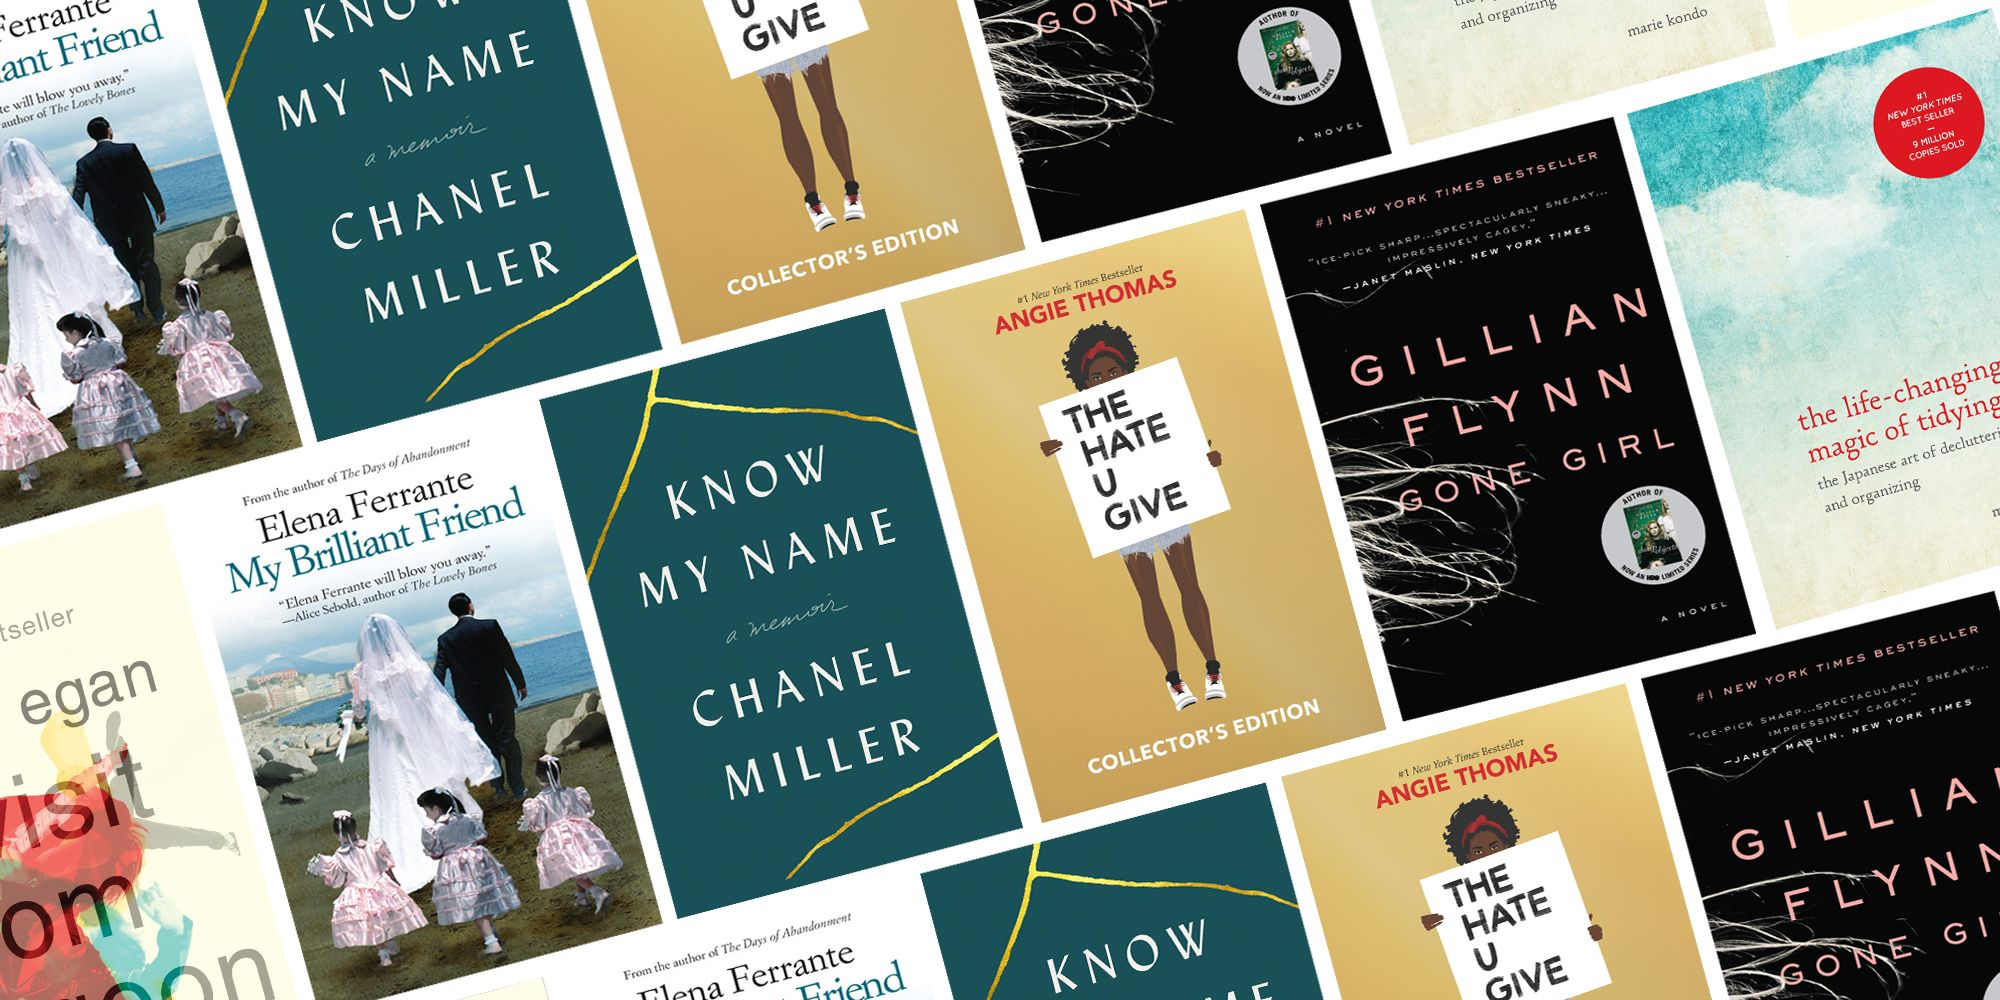 The 15 Books That Defined the 2010s